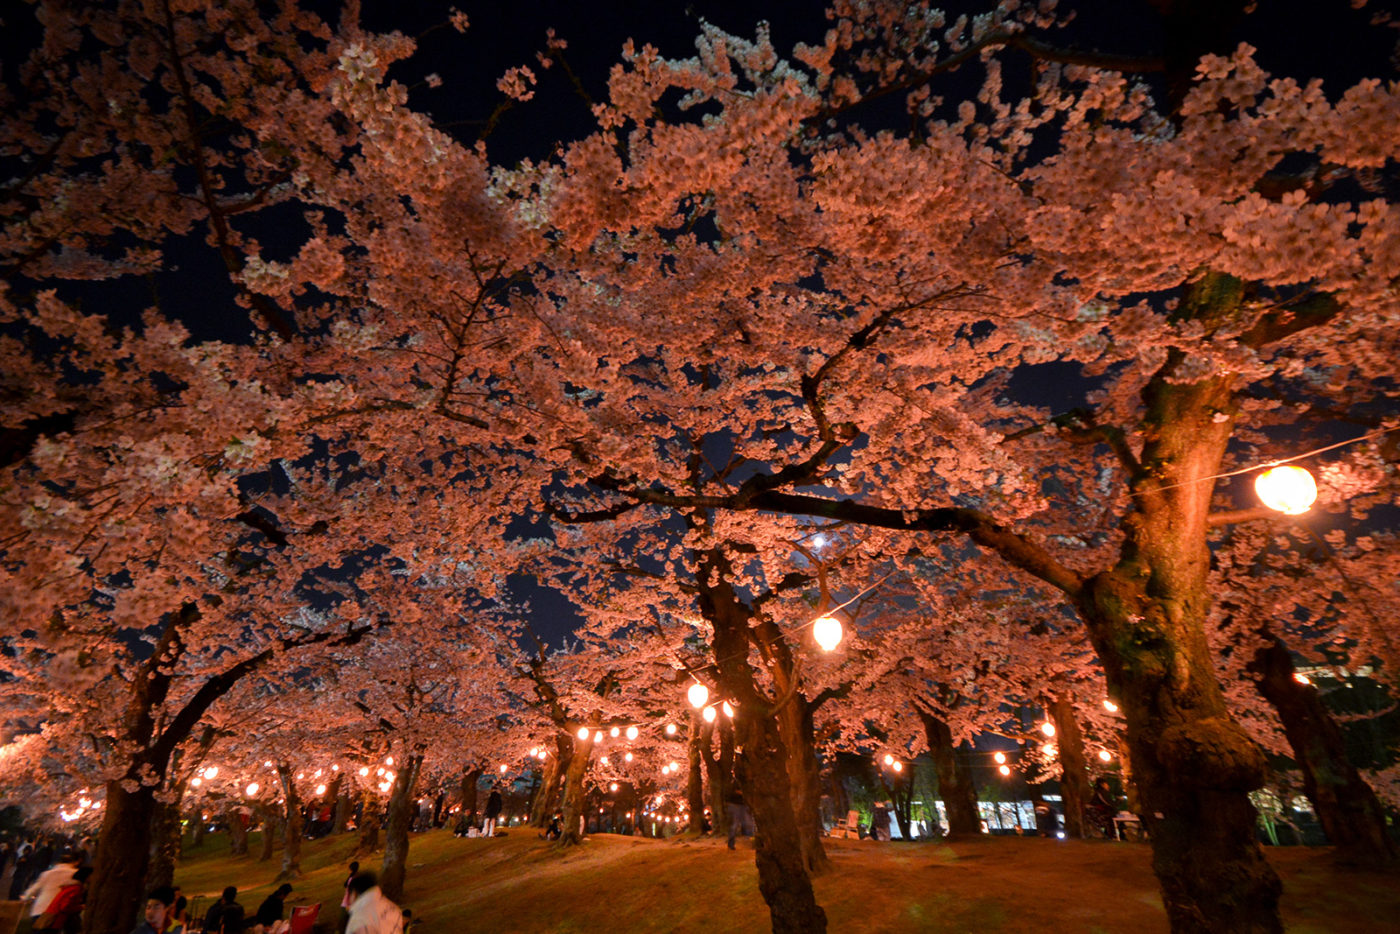 Night Cherry Blossom Illumination at Goryokaku Park